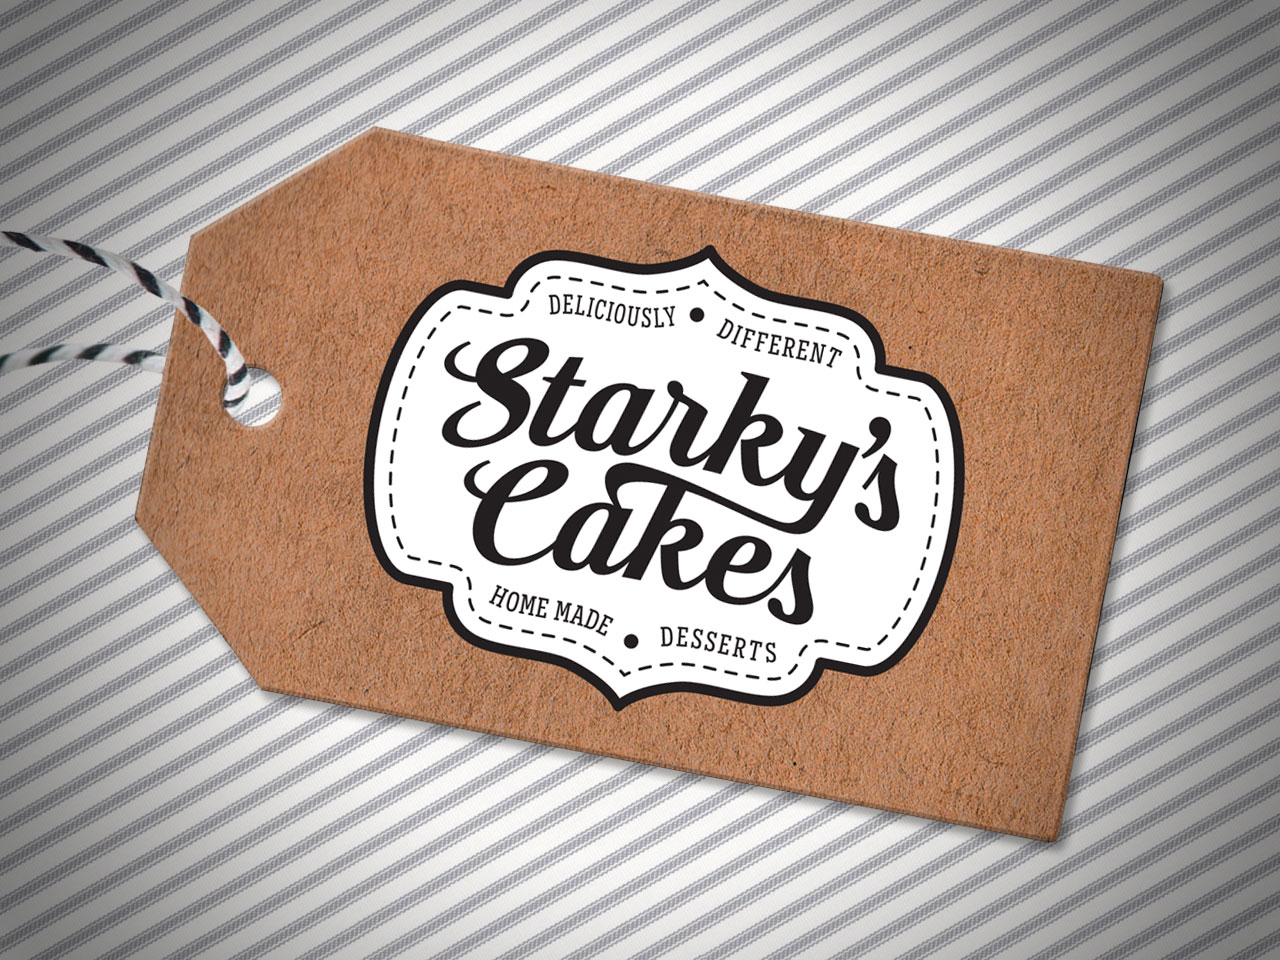 STARKY'S CAKES - Identity Design and Recycled Swing Tag. Morrison Design, Graphic Design and Branding Agency Geelong, Melbourne, VIC.